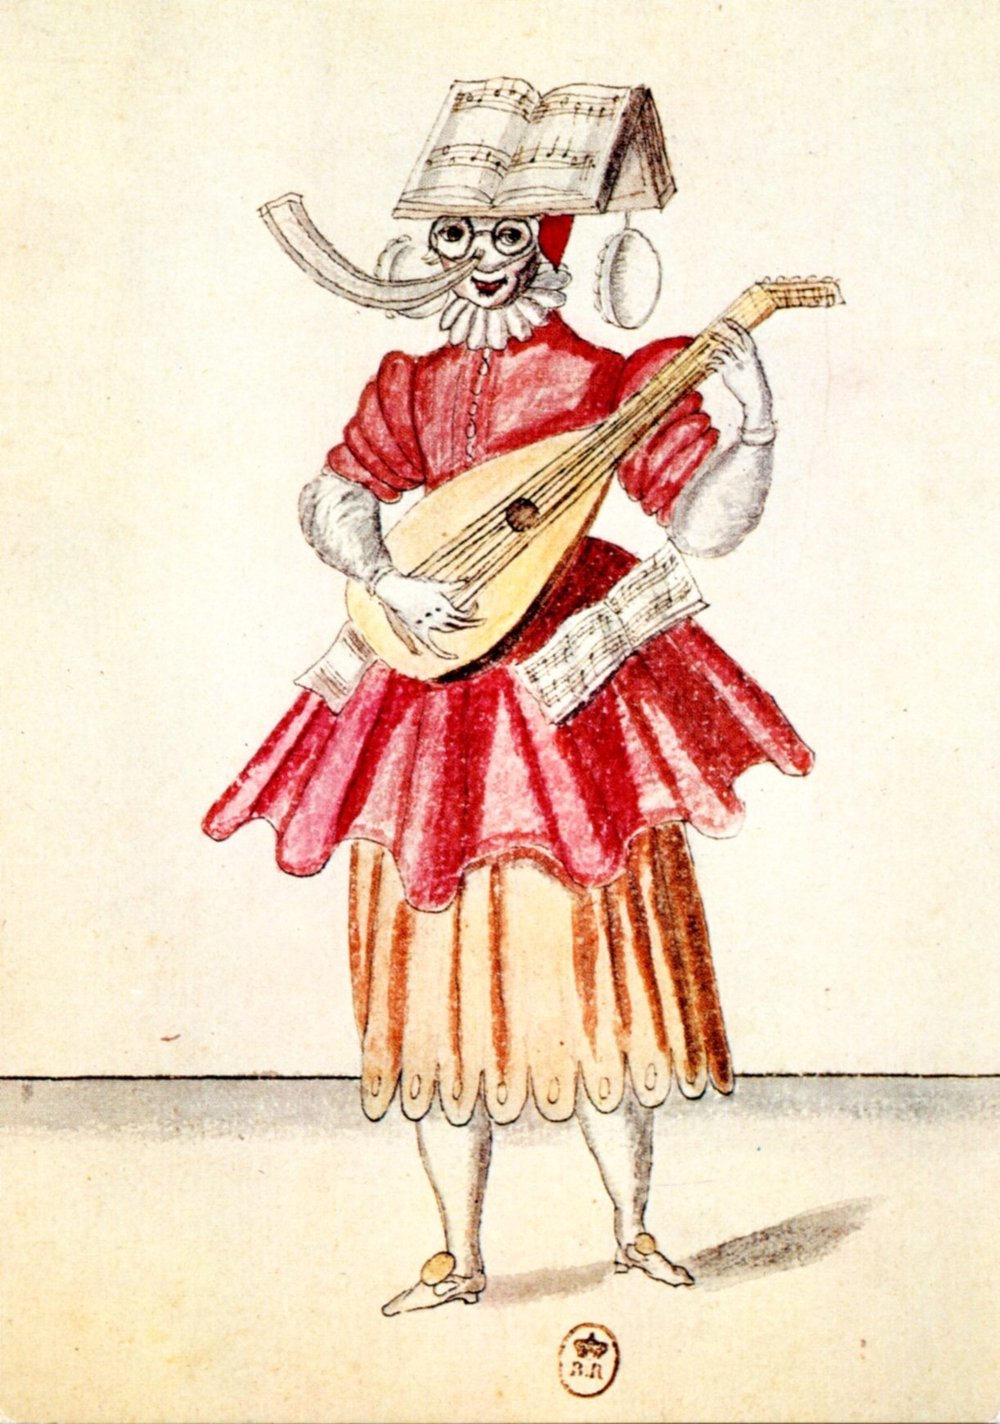 Ballet des fées des forests de Saint-Germain (Watercolor by Rabel, Bibl. nationale Paris)